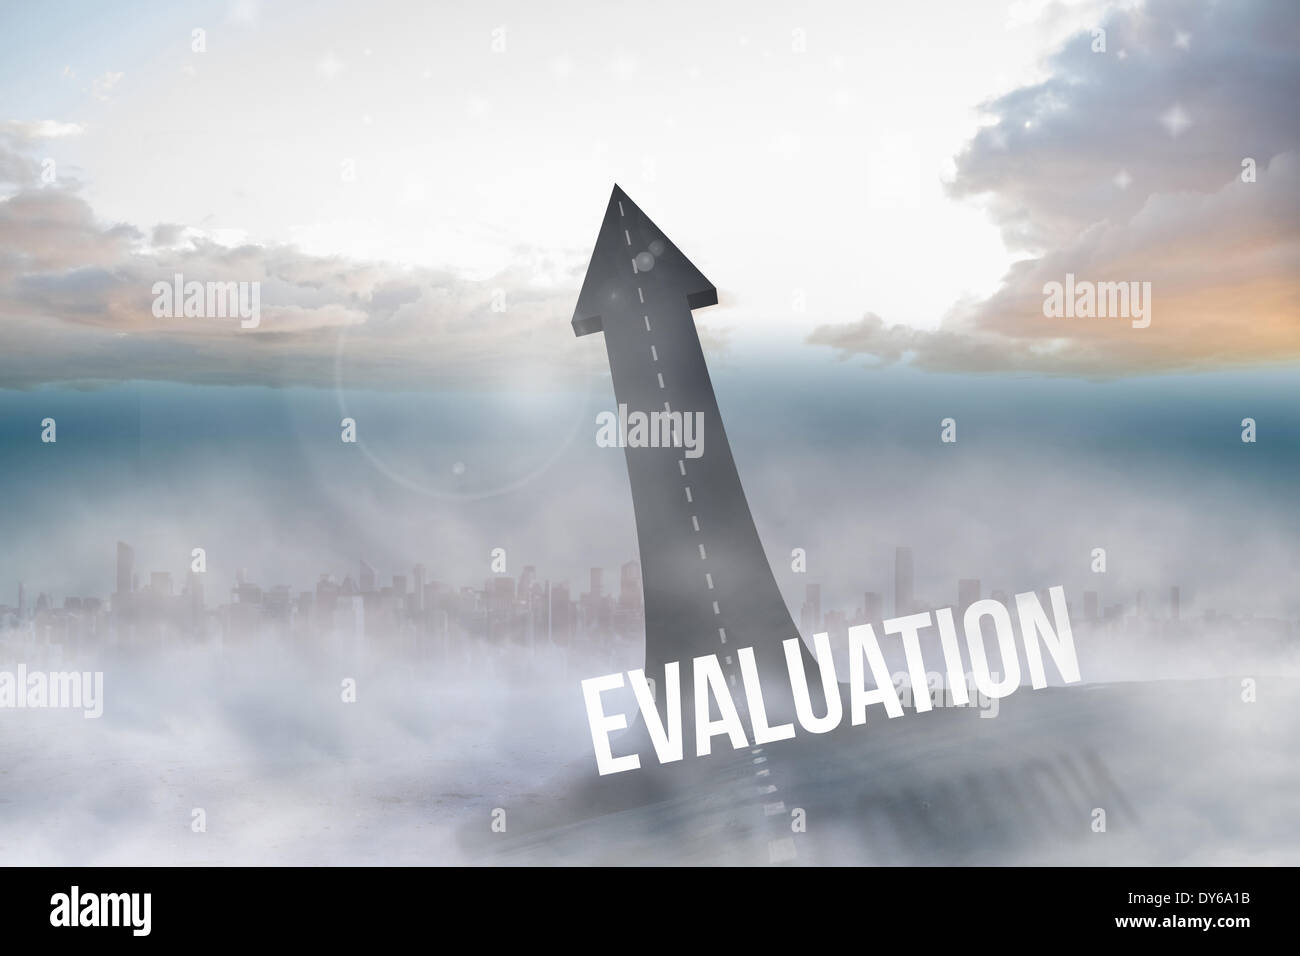 Evaluation against road turning into arrow - Stock Image